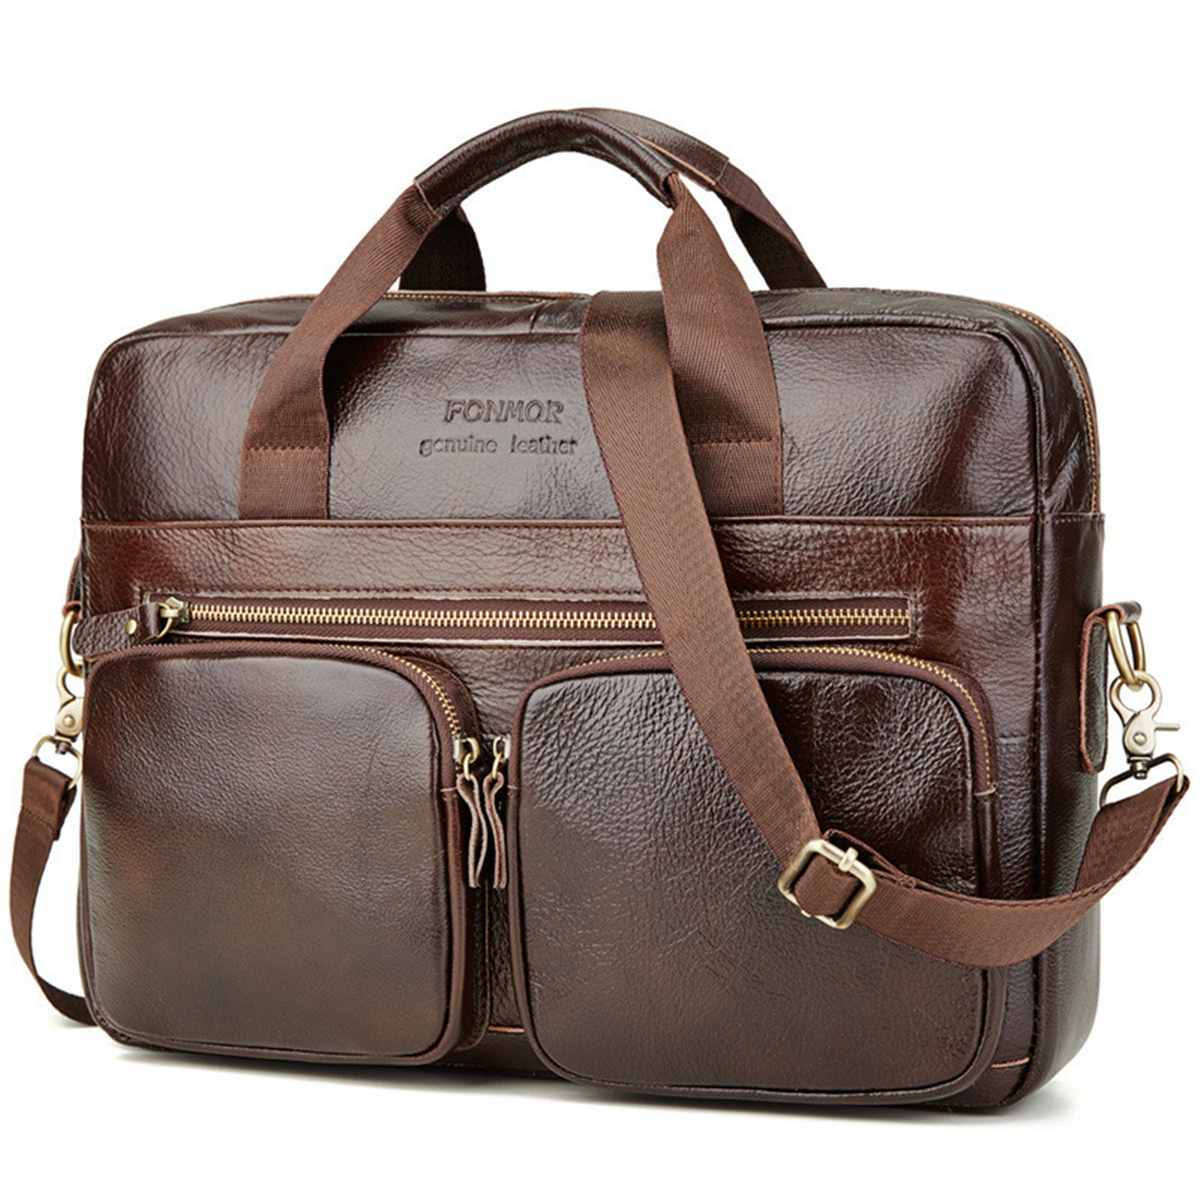 Genuine Leather Briefcase Men's Cowhide Leather Handbags Crossbody Bags Men's High Quality Laptop Business Messenger Bags New